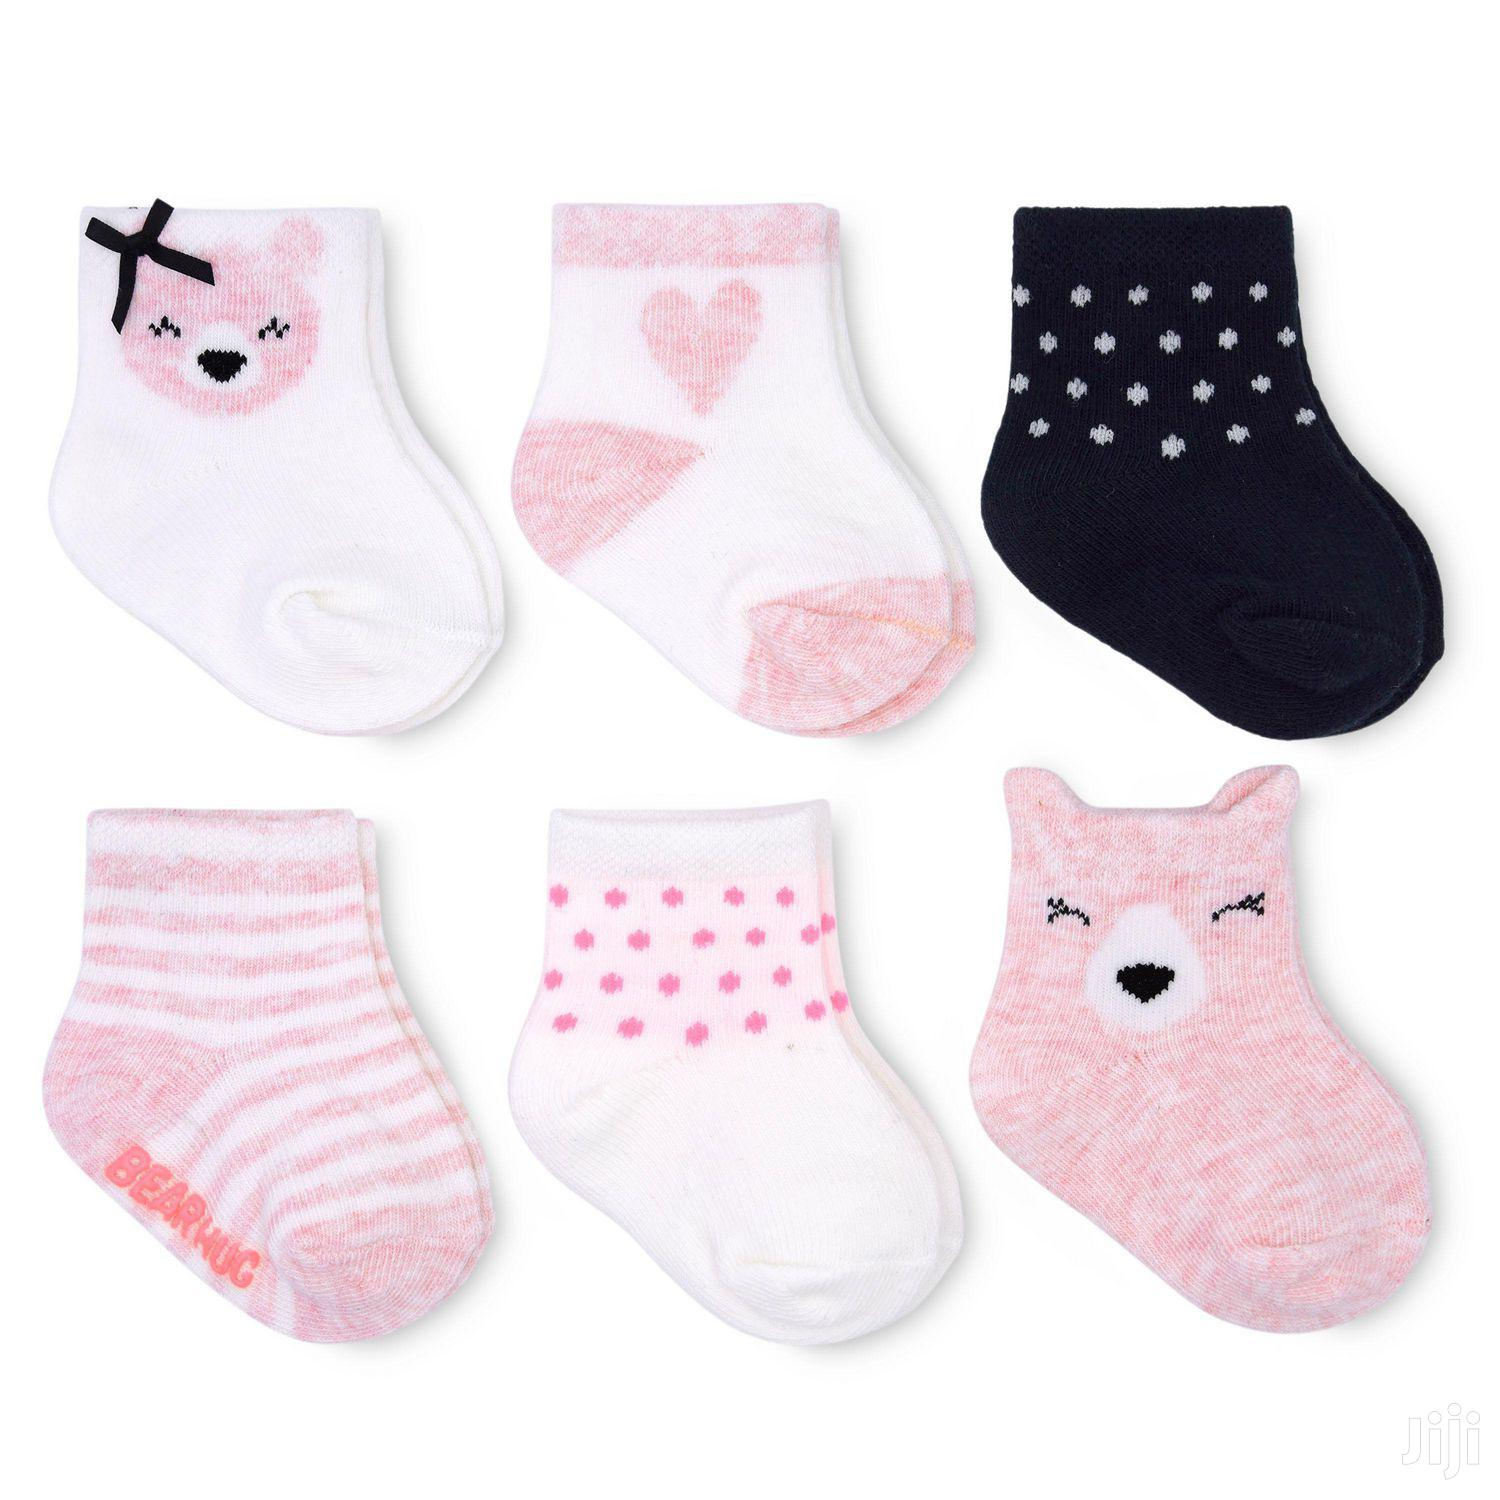 A Packet of Four Baby Body Socks